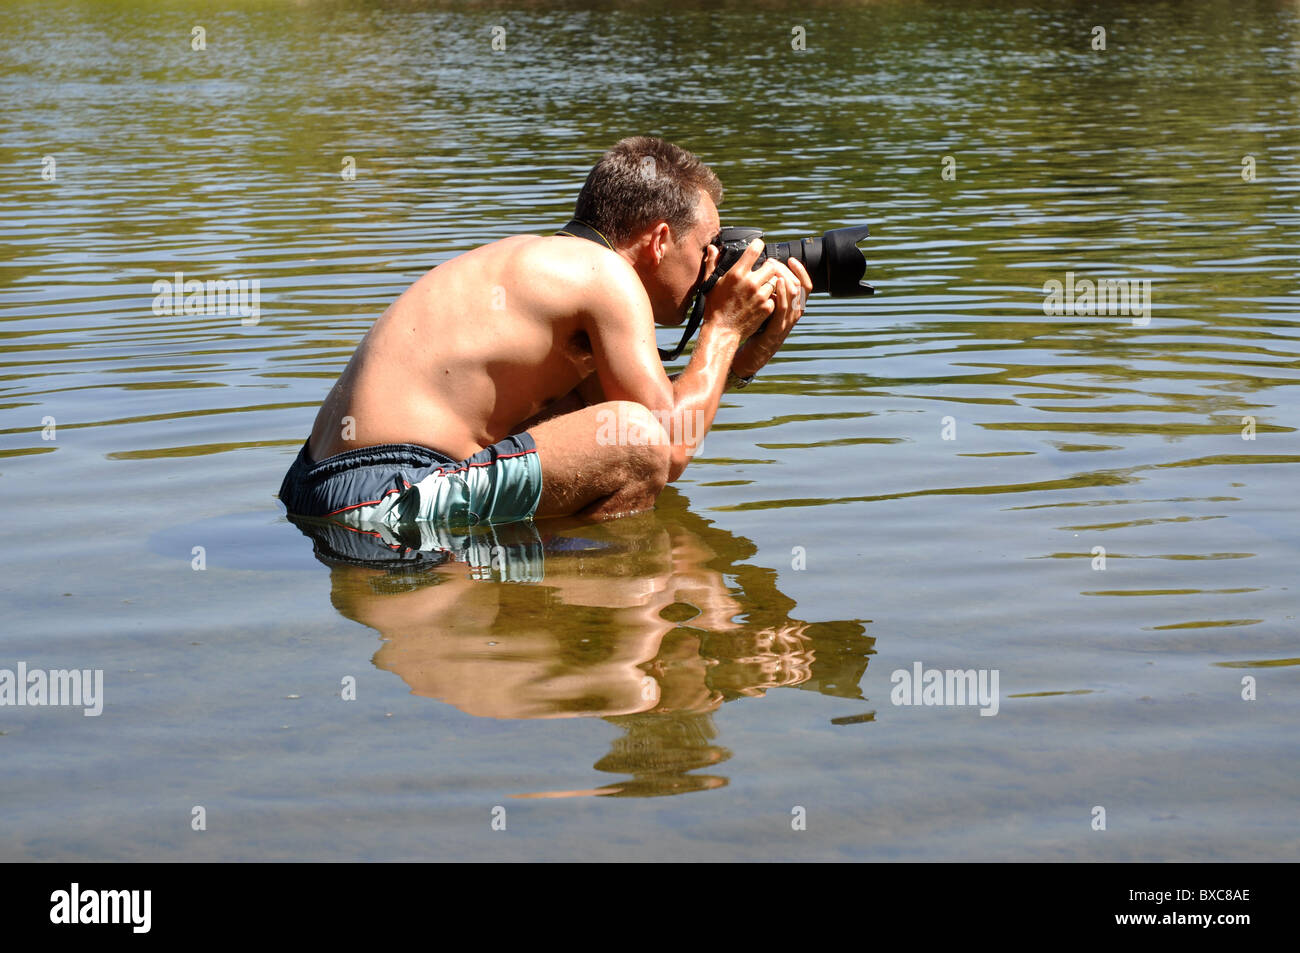 Professional photographer working under extreme conditions - Stock Image